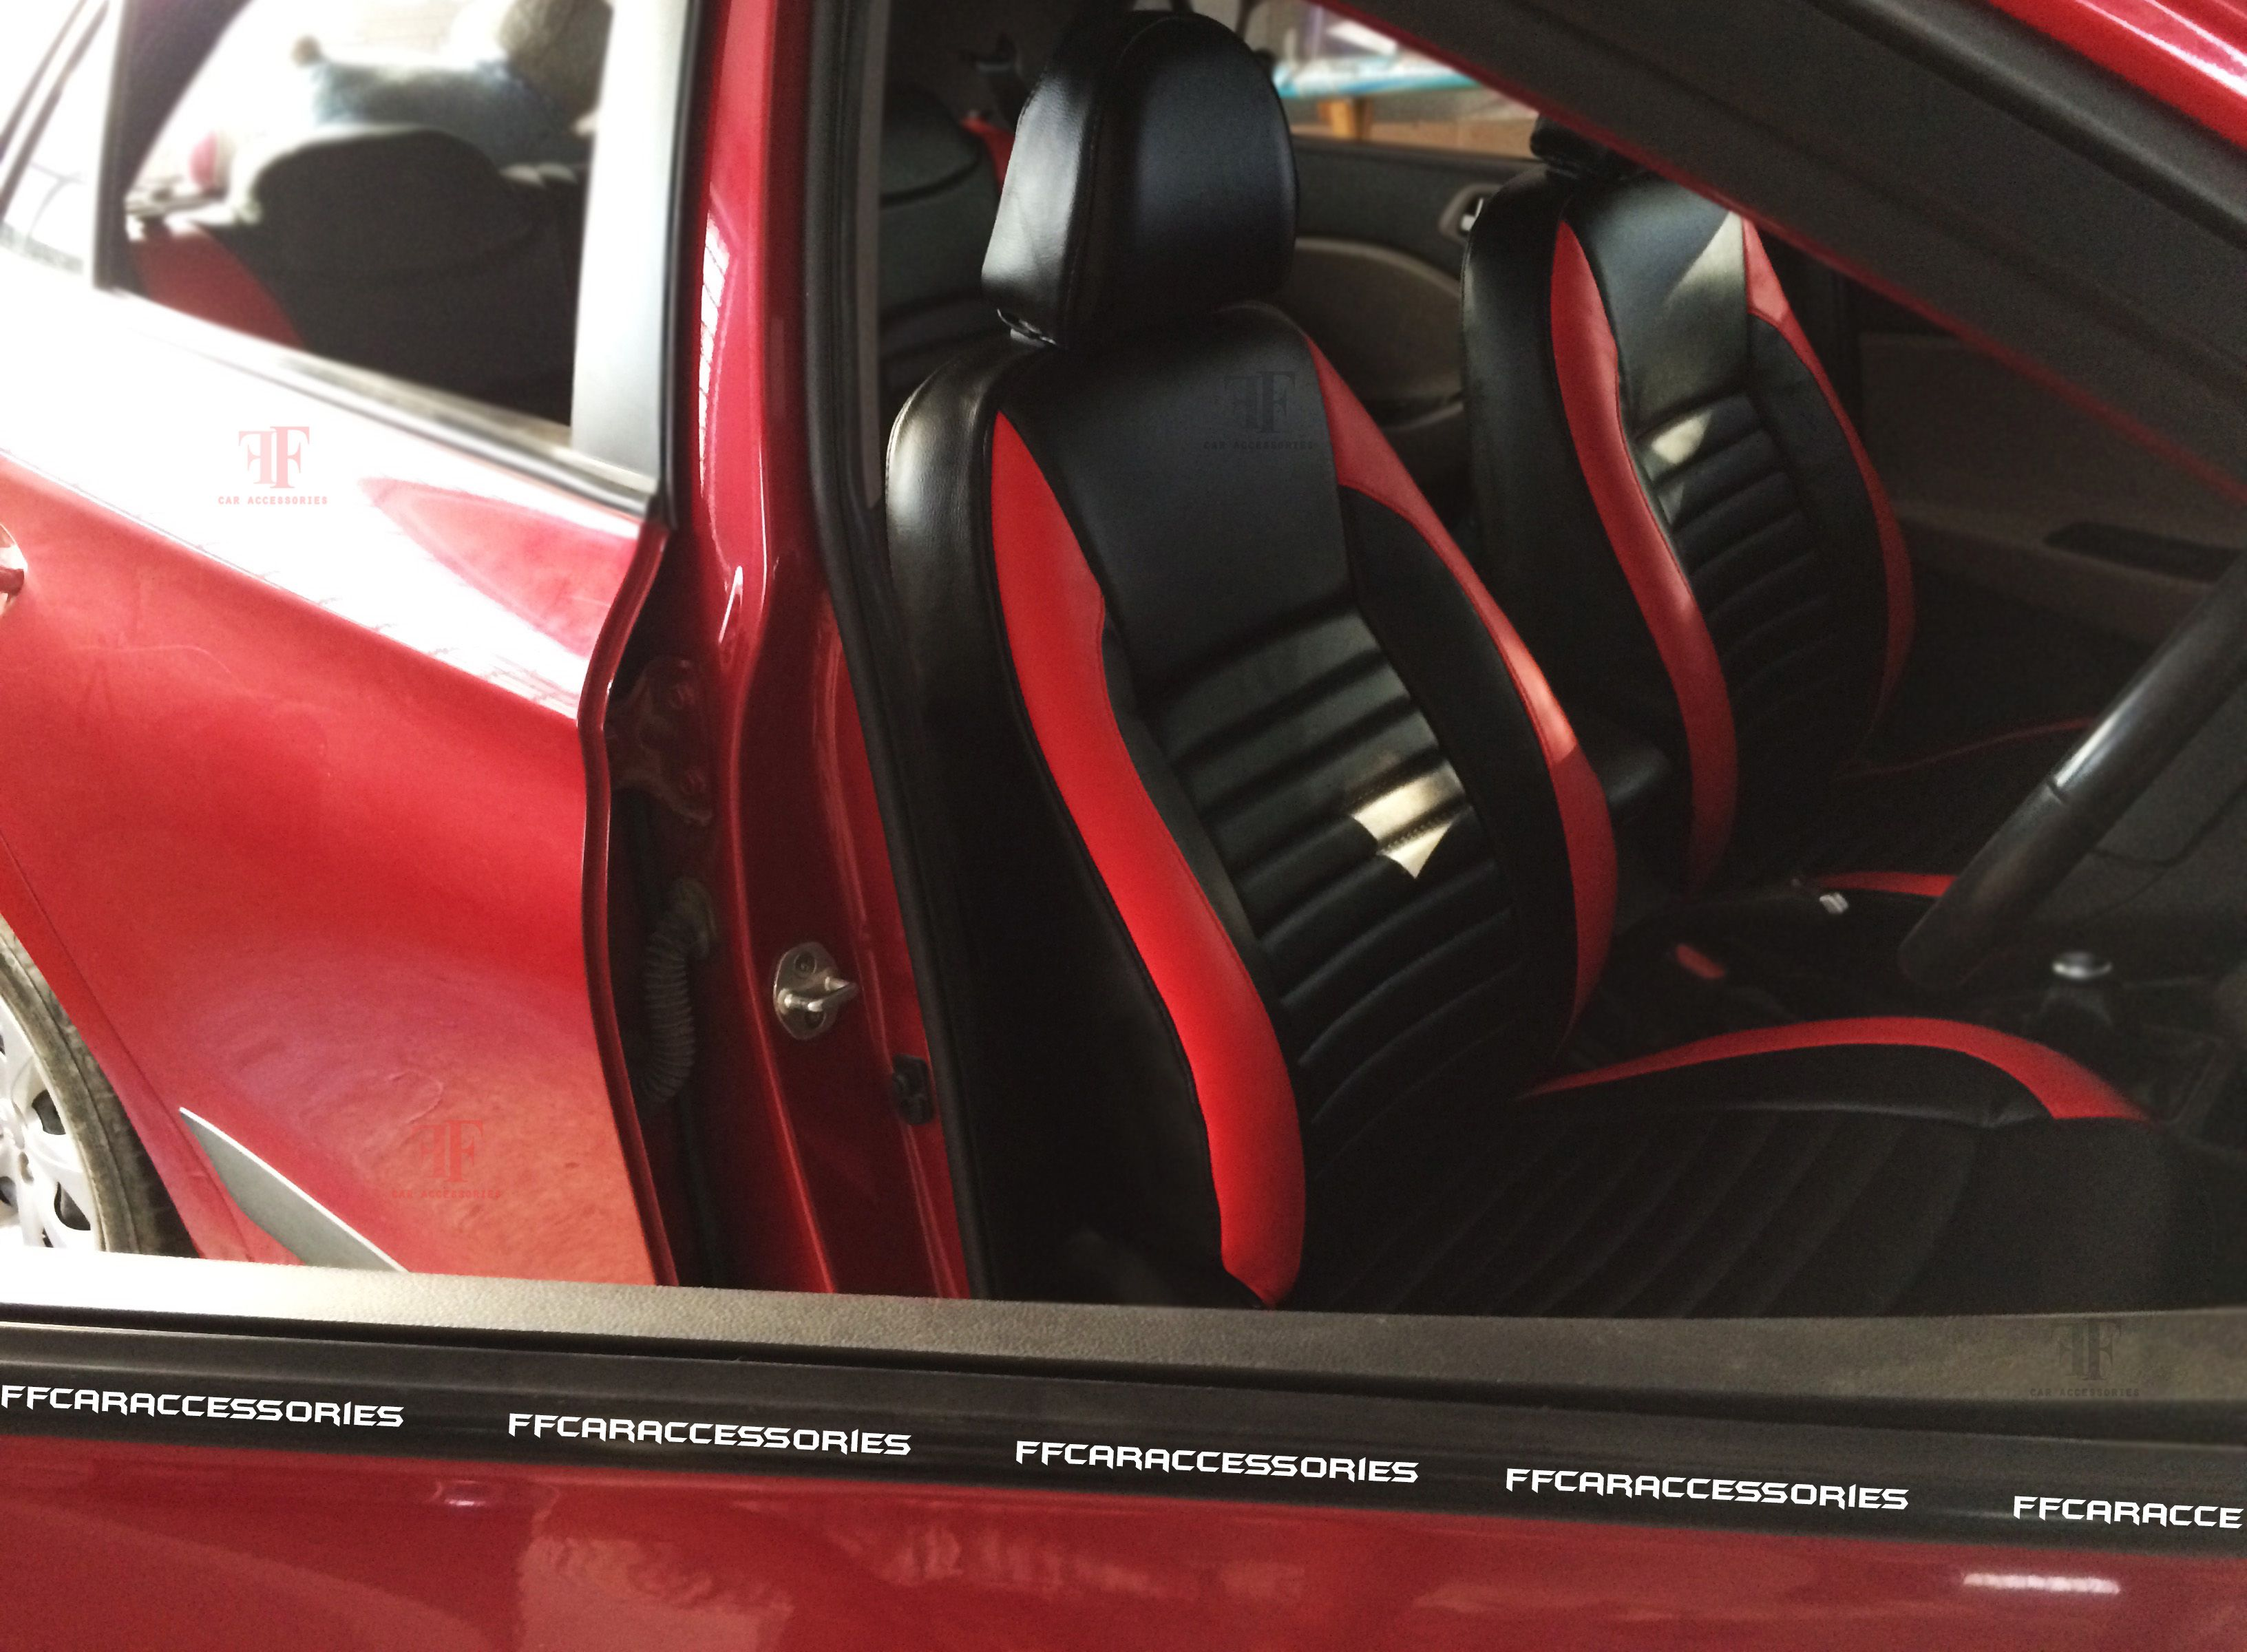 Red Black Combination Of Hyundai I 20 Customised Seat Cover Gives An Sporty Look Designed And Installed By Our Team